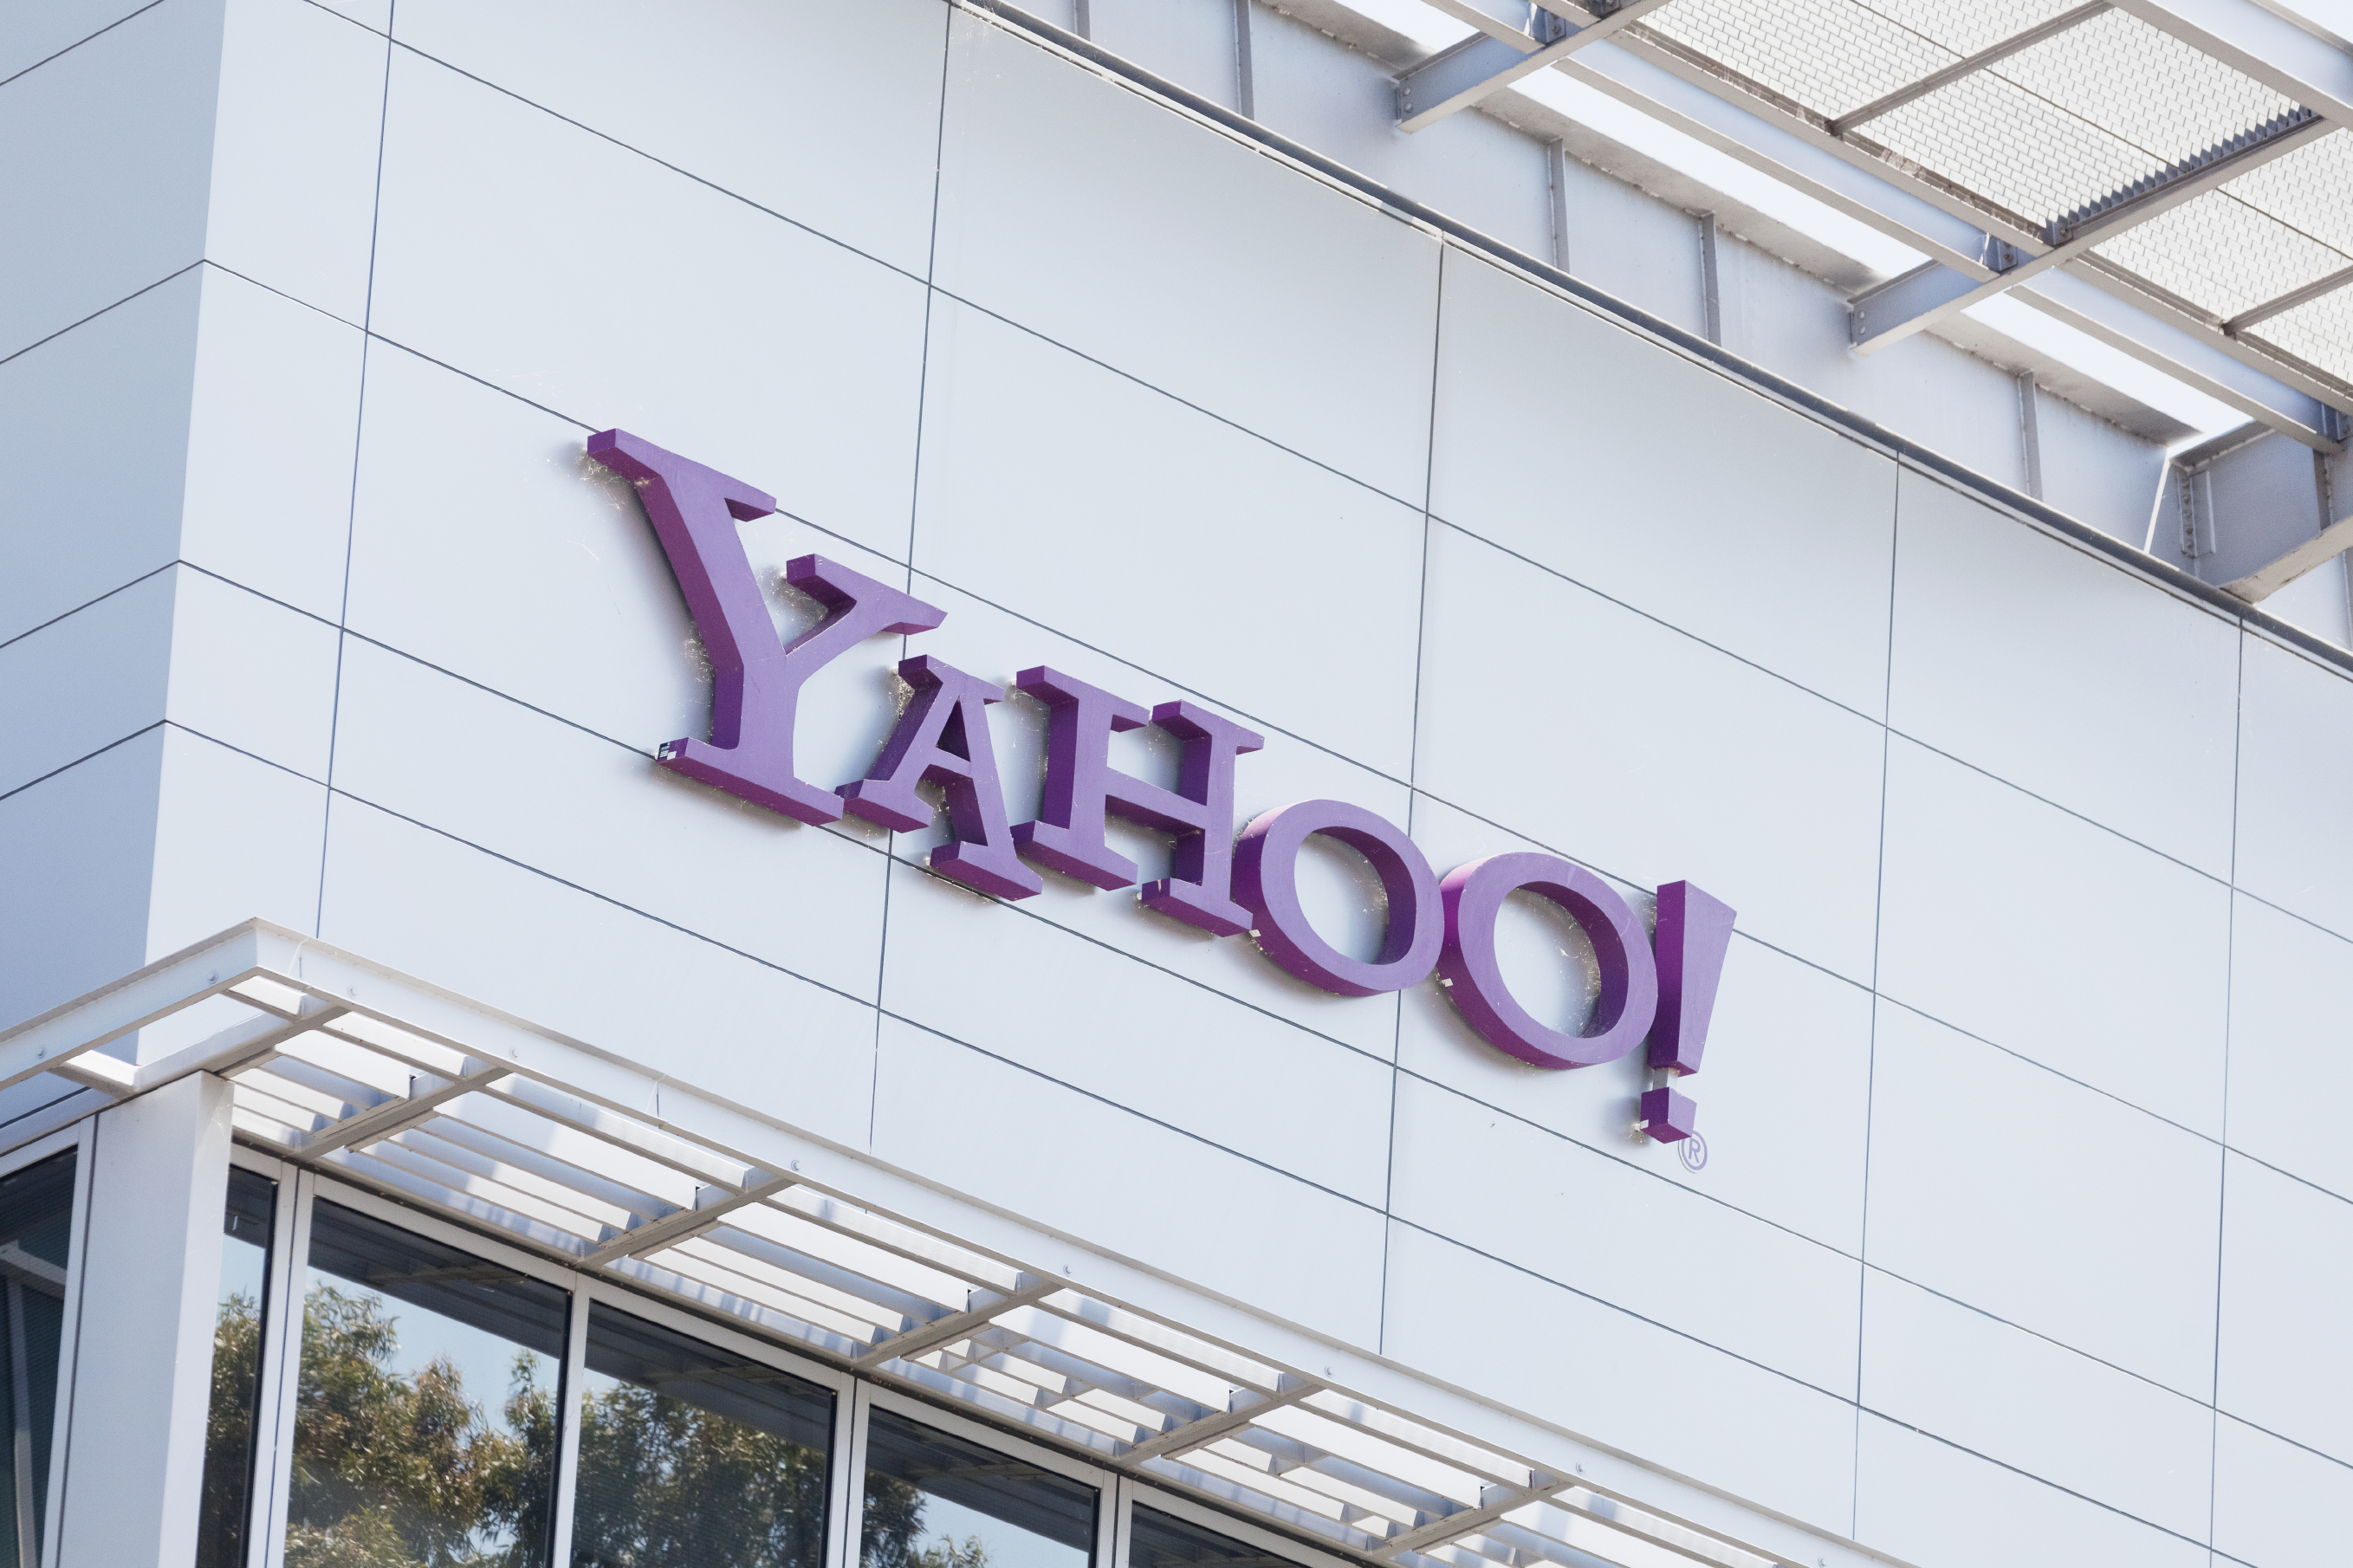 """Criminal hackers"" were employed by Russia to steal Yahoo! customer data, says DOJ"